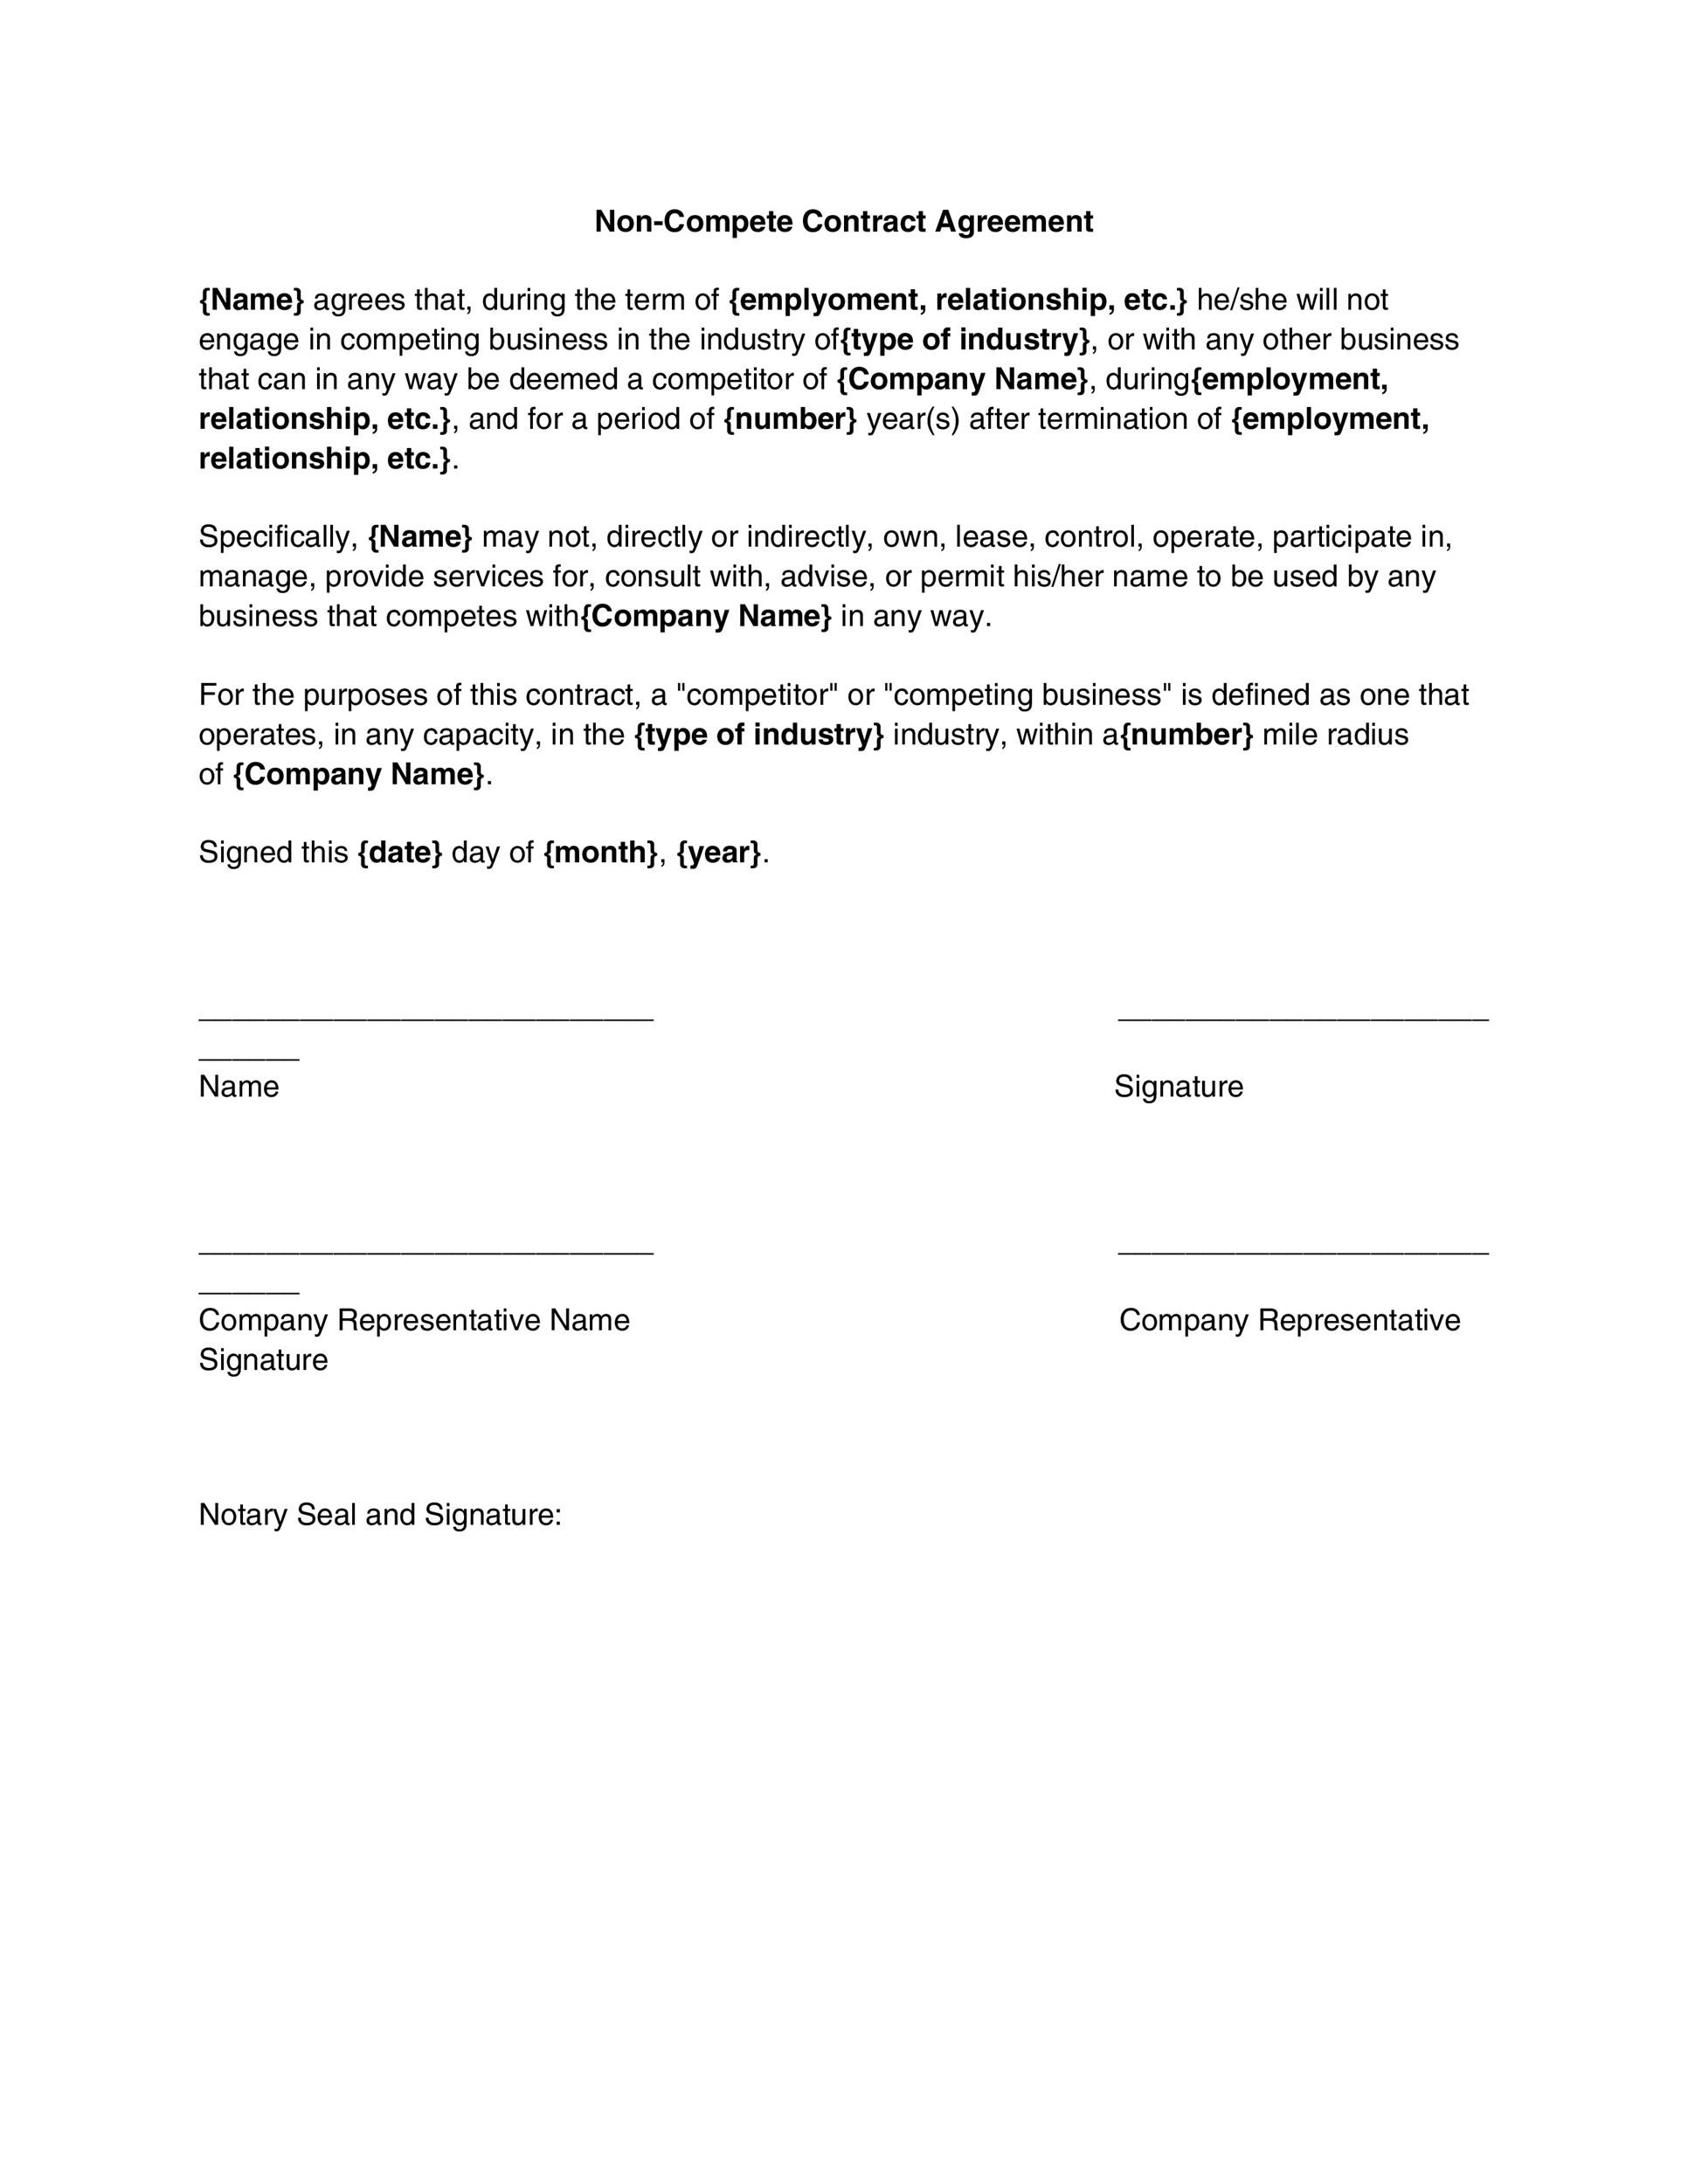 Job Contract Template. Employee Agreement Is A Contract Between An